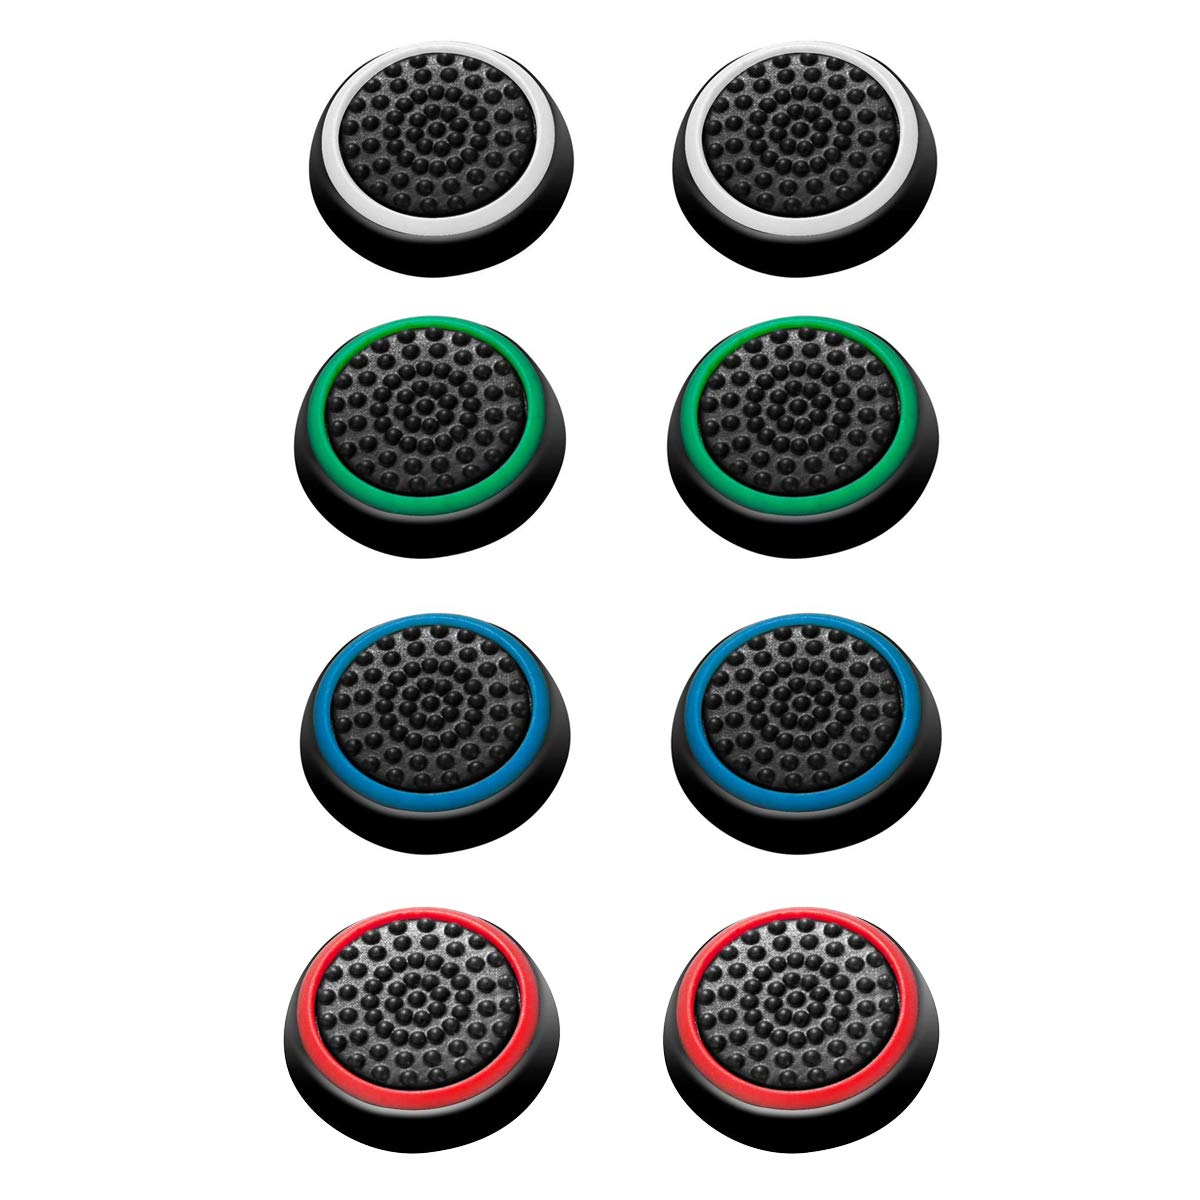 carocheri 4 Pairs 8 Pcs Silicone Cap Joystick Thumb Grip Protect Cover for Ps3 Ps4 Xbox 360 Xbox One Wii U Game…